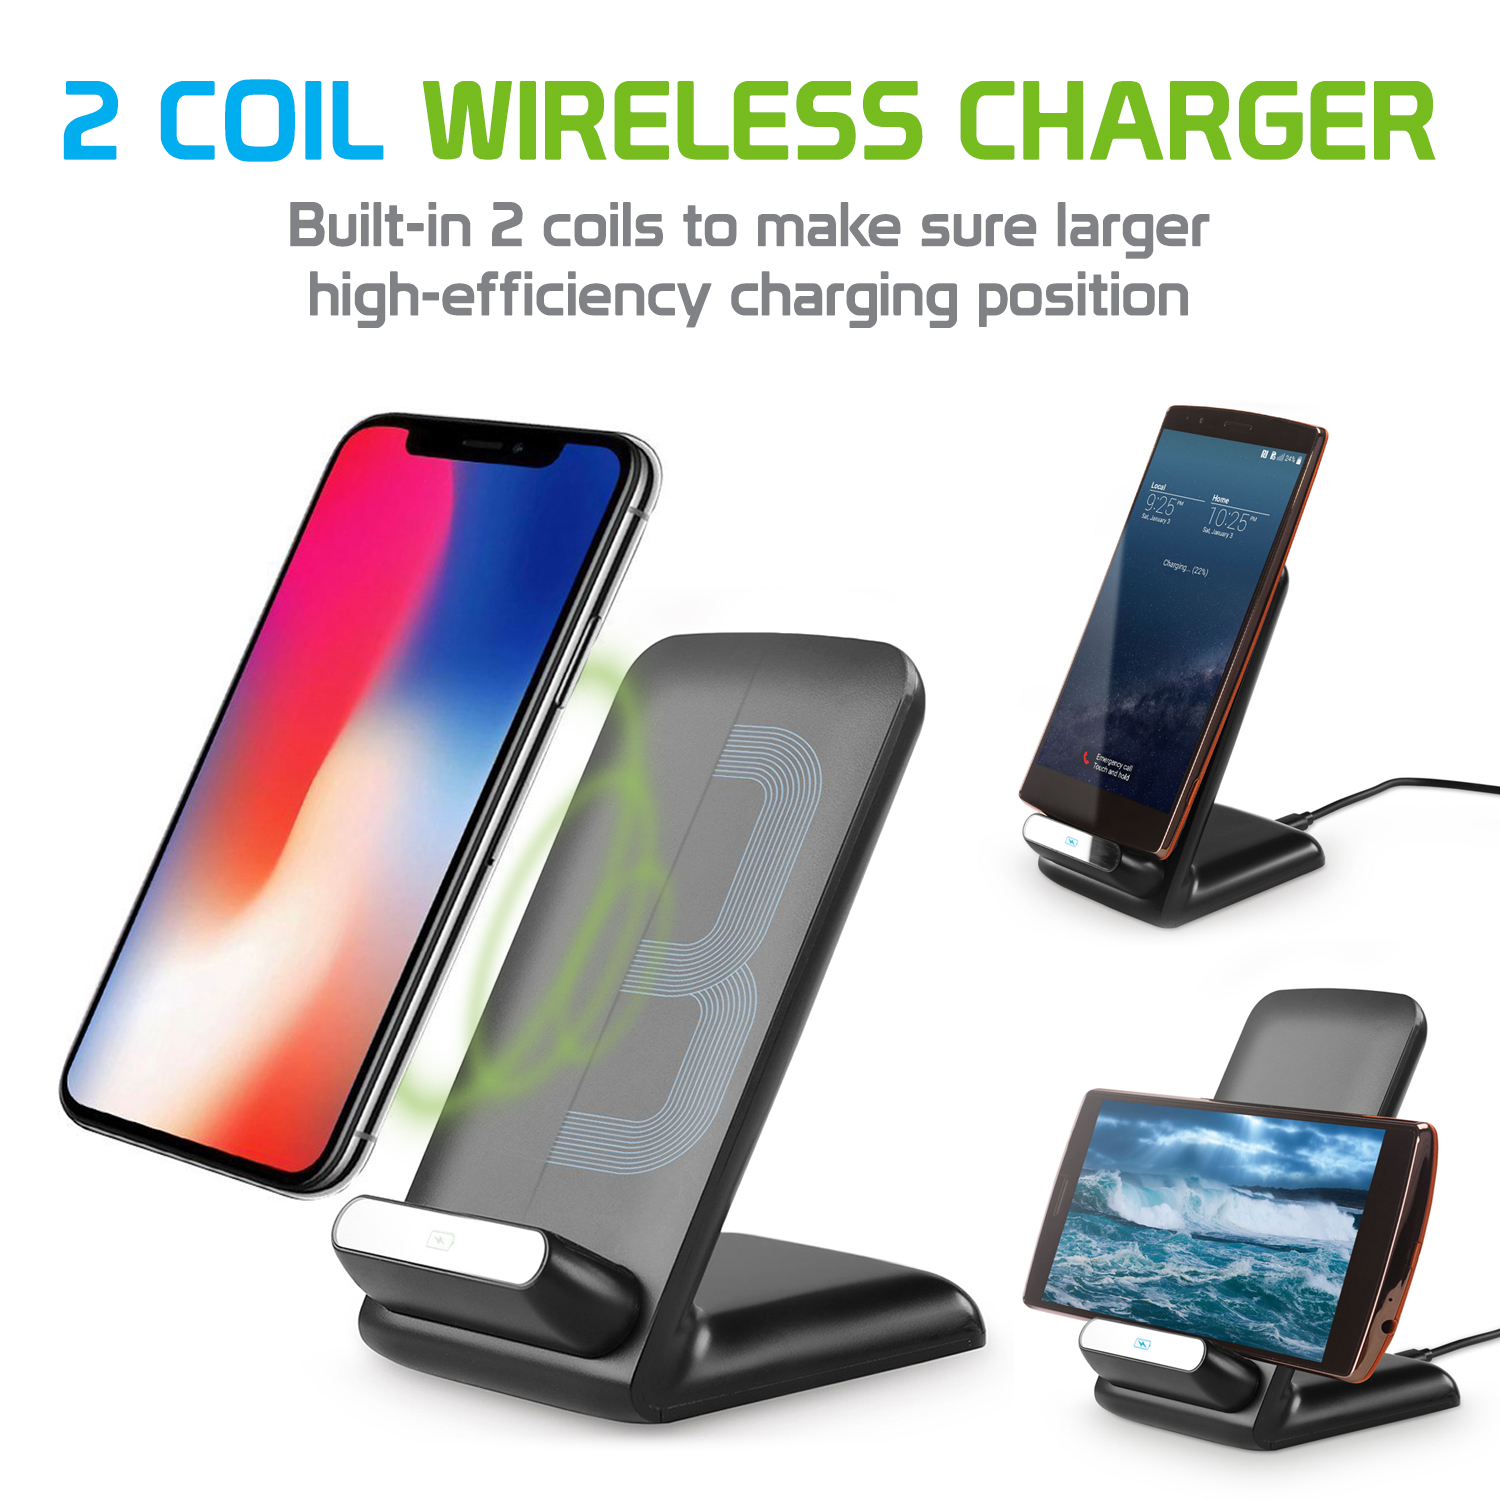 2 Coil Qi Wireless Charger (10Watt/2.1Amp), Fast Wireless Charging Stand for Samsung Galaxy Note 8, Apple iPhone X and All Wireless (Qi) Enabled Devices – by Cellet - Black